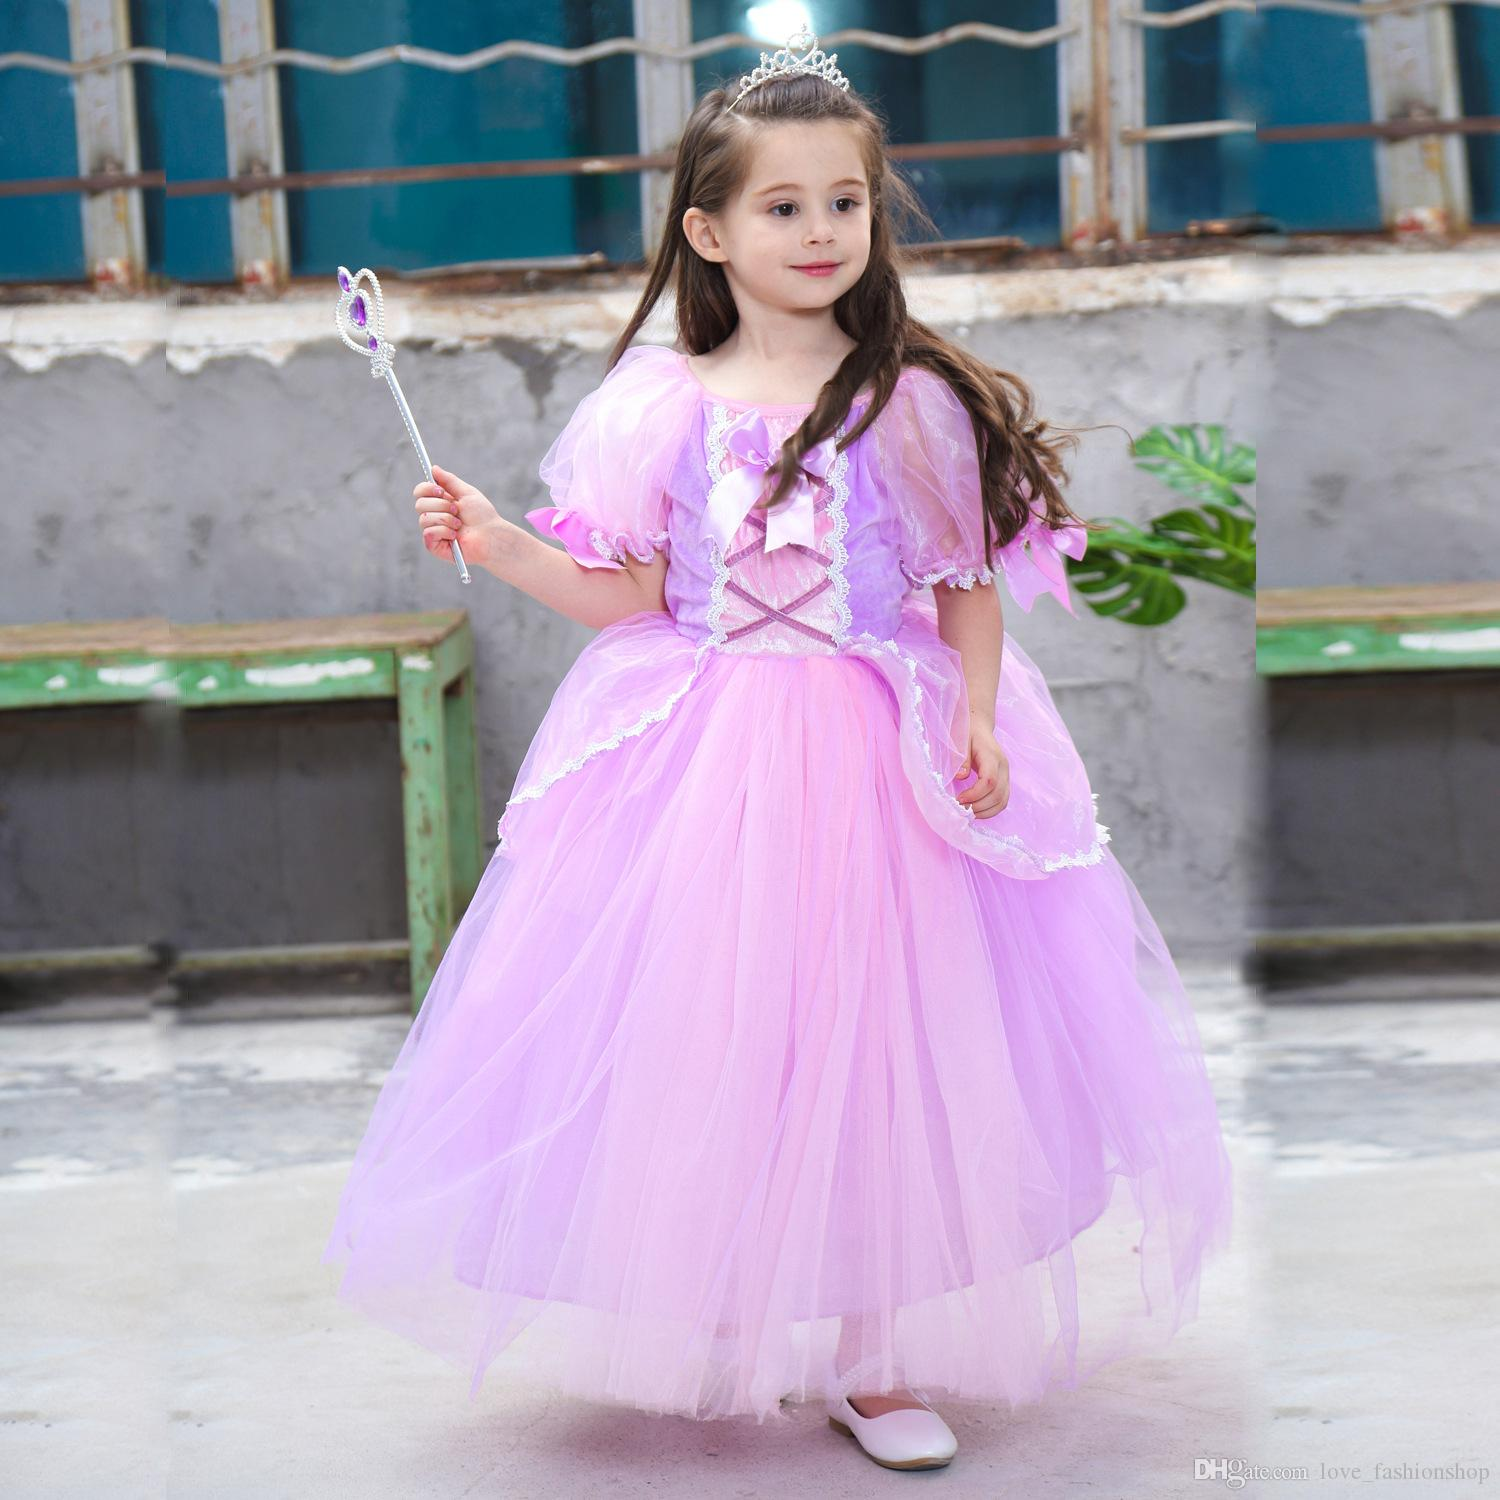 79cd53f93e0 2019 2019 Girls Long Hair Princess Sophia Dress Kids Easter Cosplay  Costumes Dresses Ruffle Pleated Vintage Wedding Formal Occasion Dress From  ...